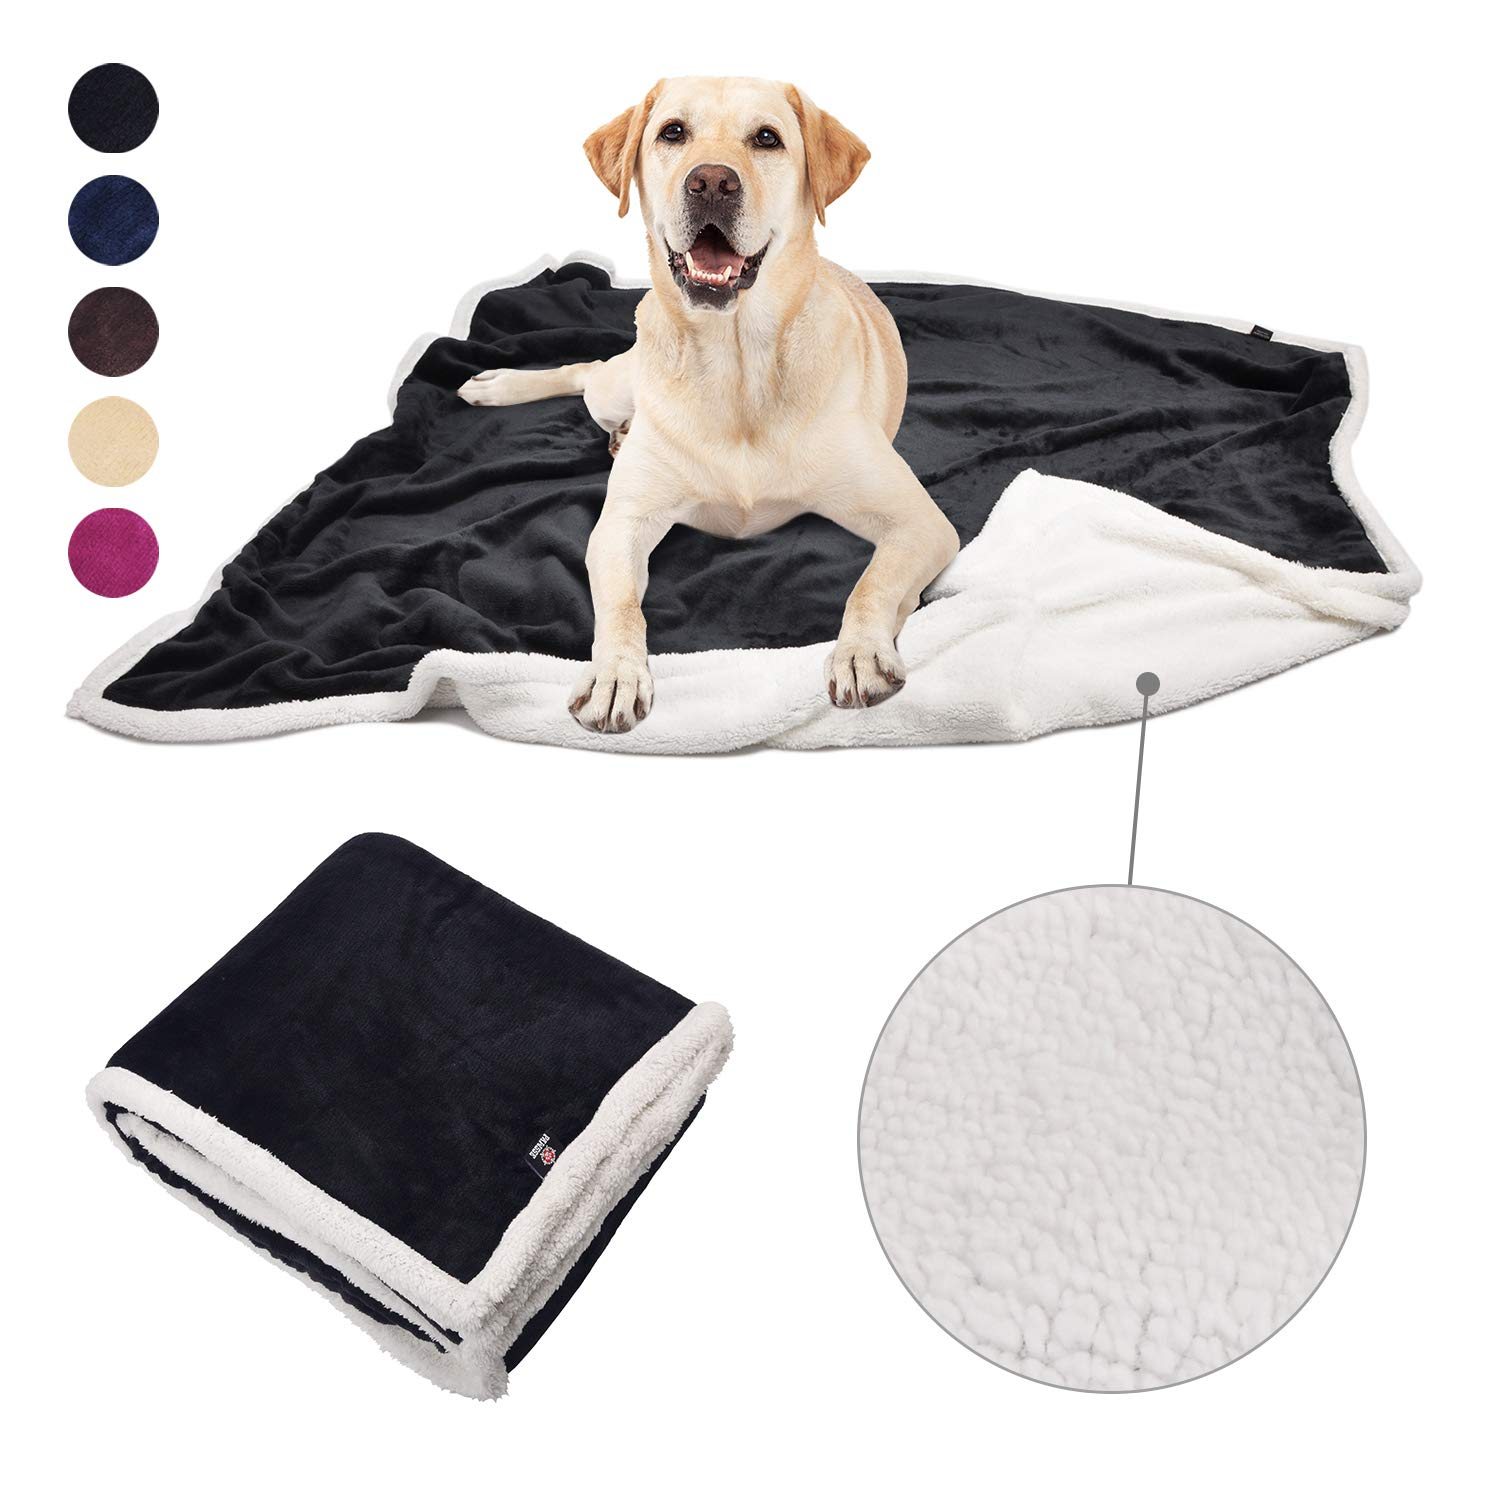 Pawsse Large Dog Blanket Best Blankets For Dogs